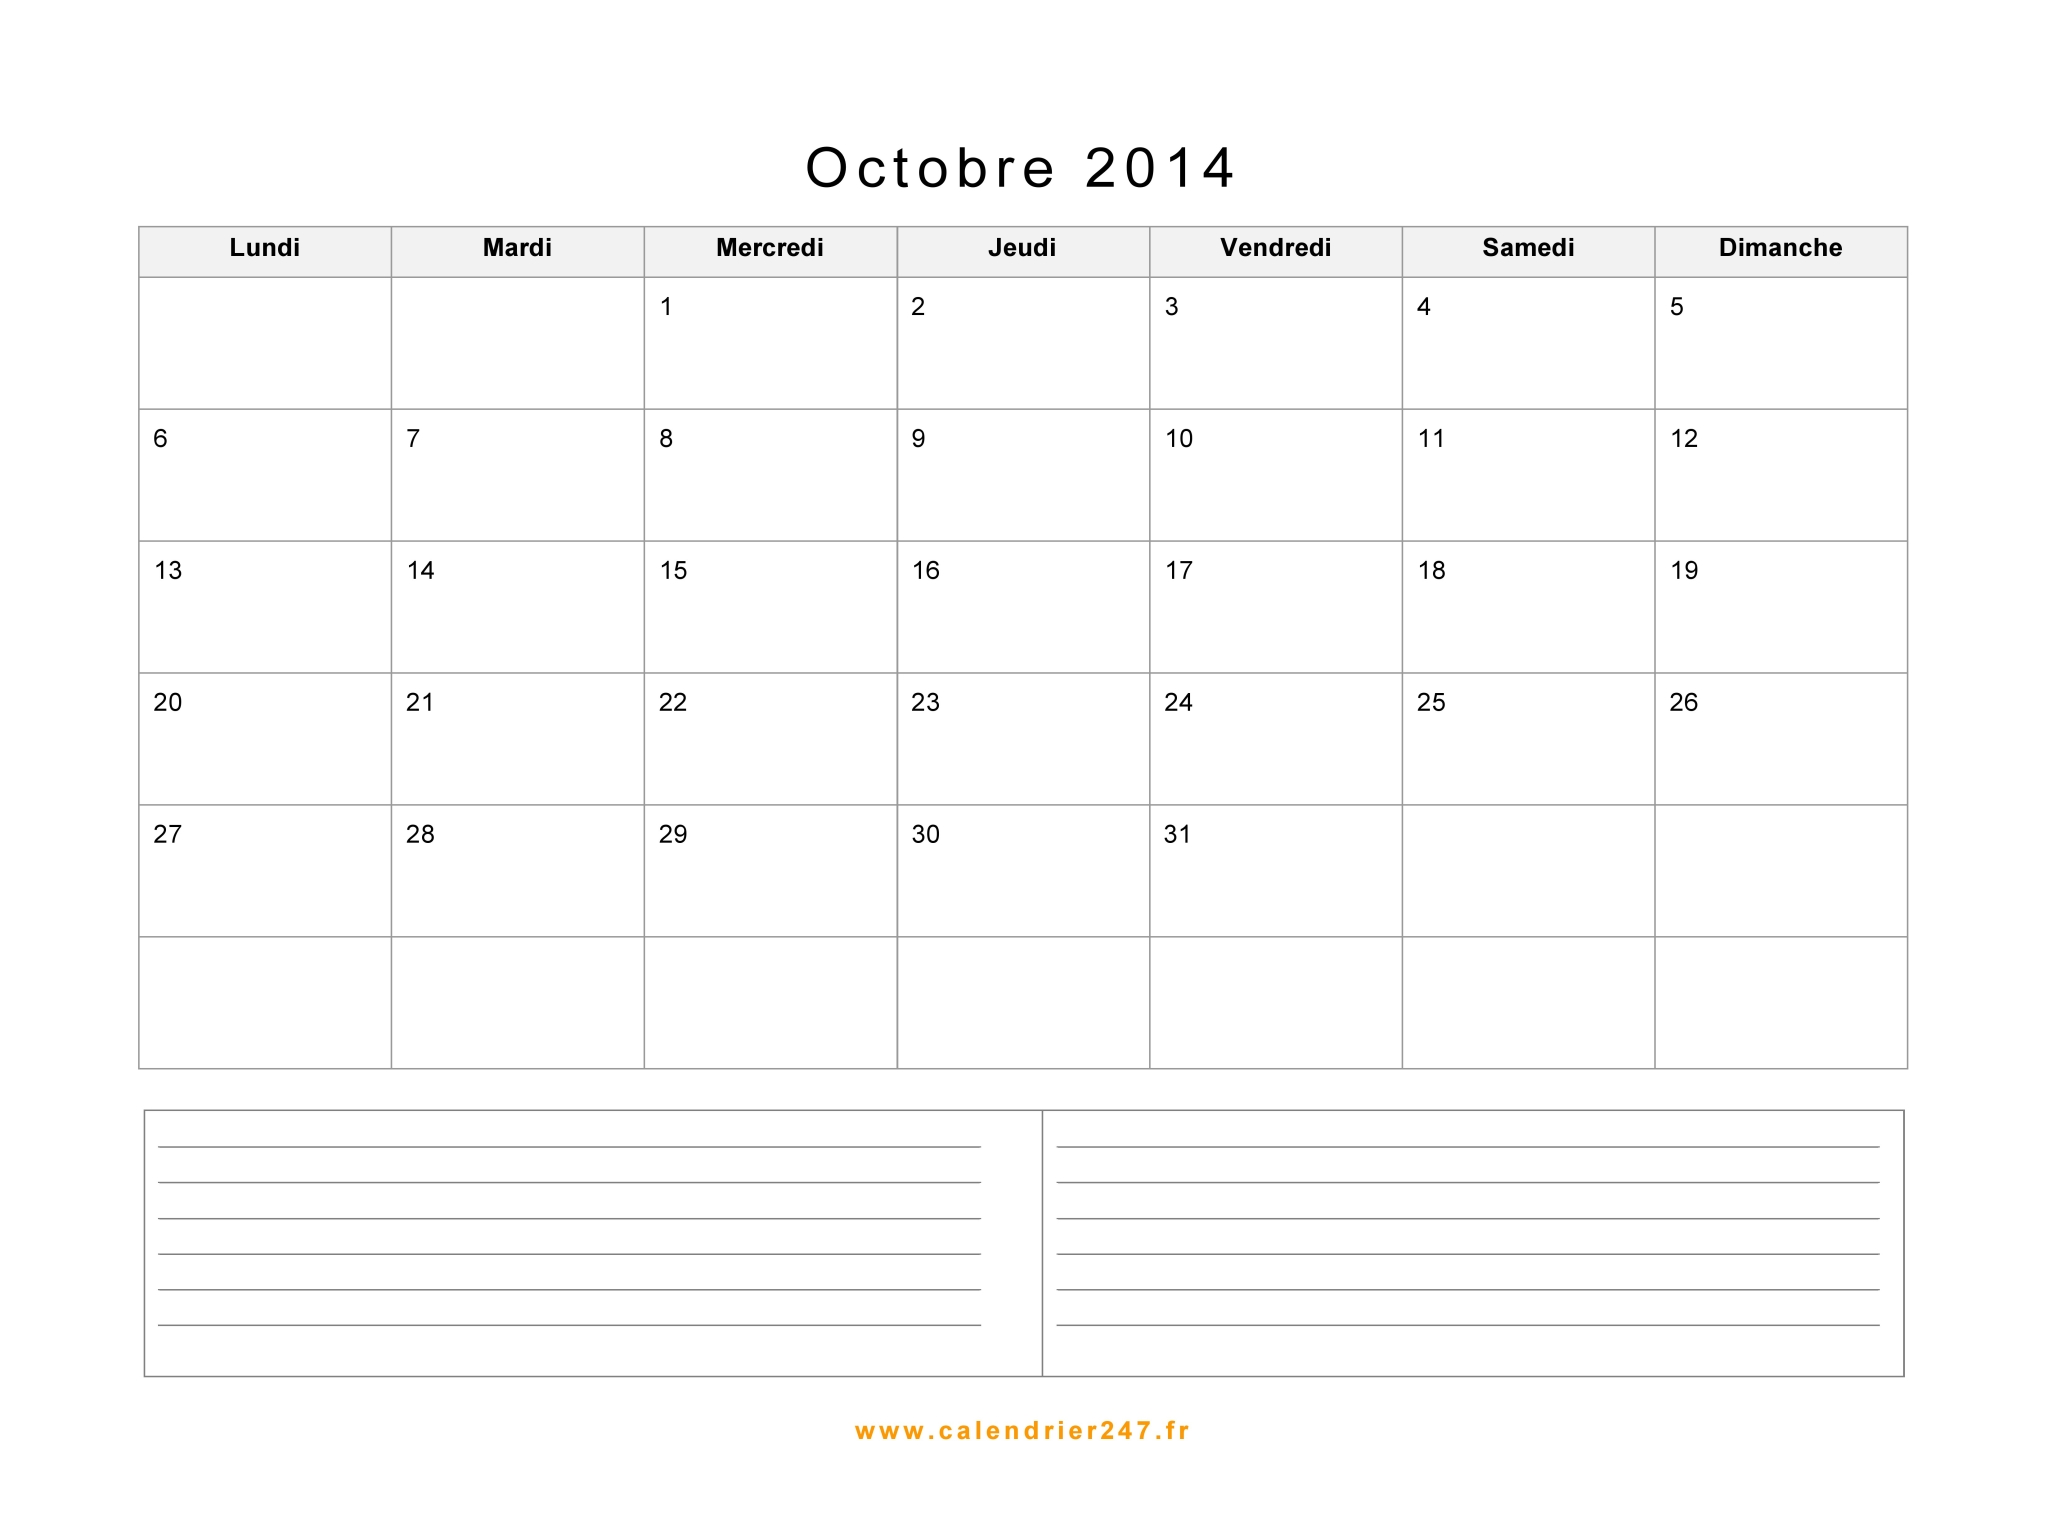 vacances en octobre 2014 clermont ferrand design